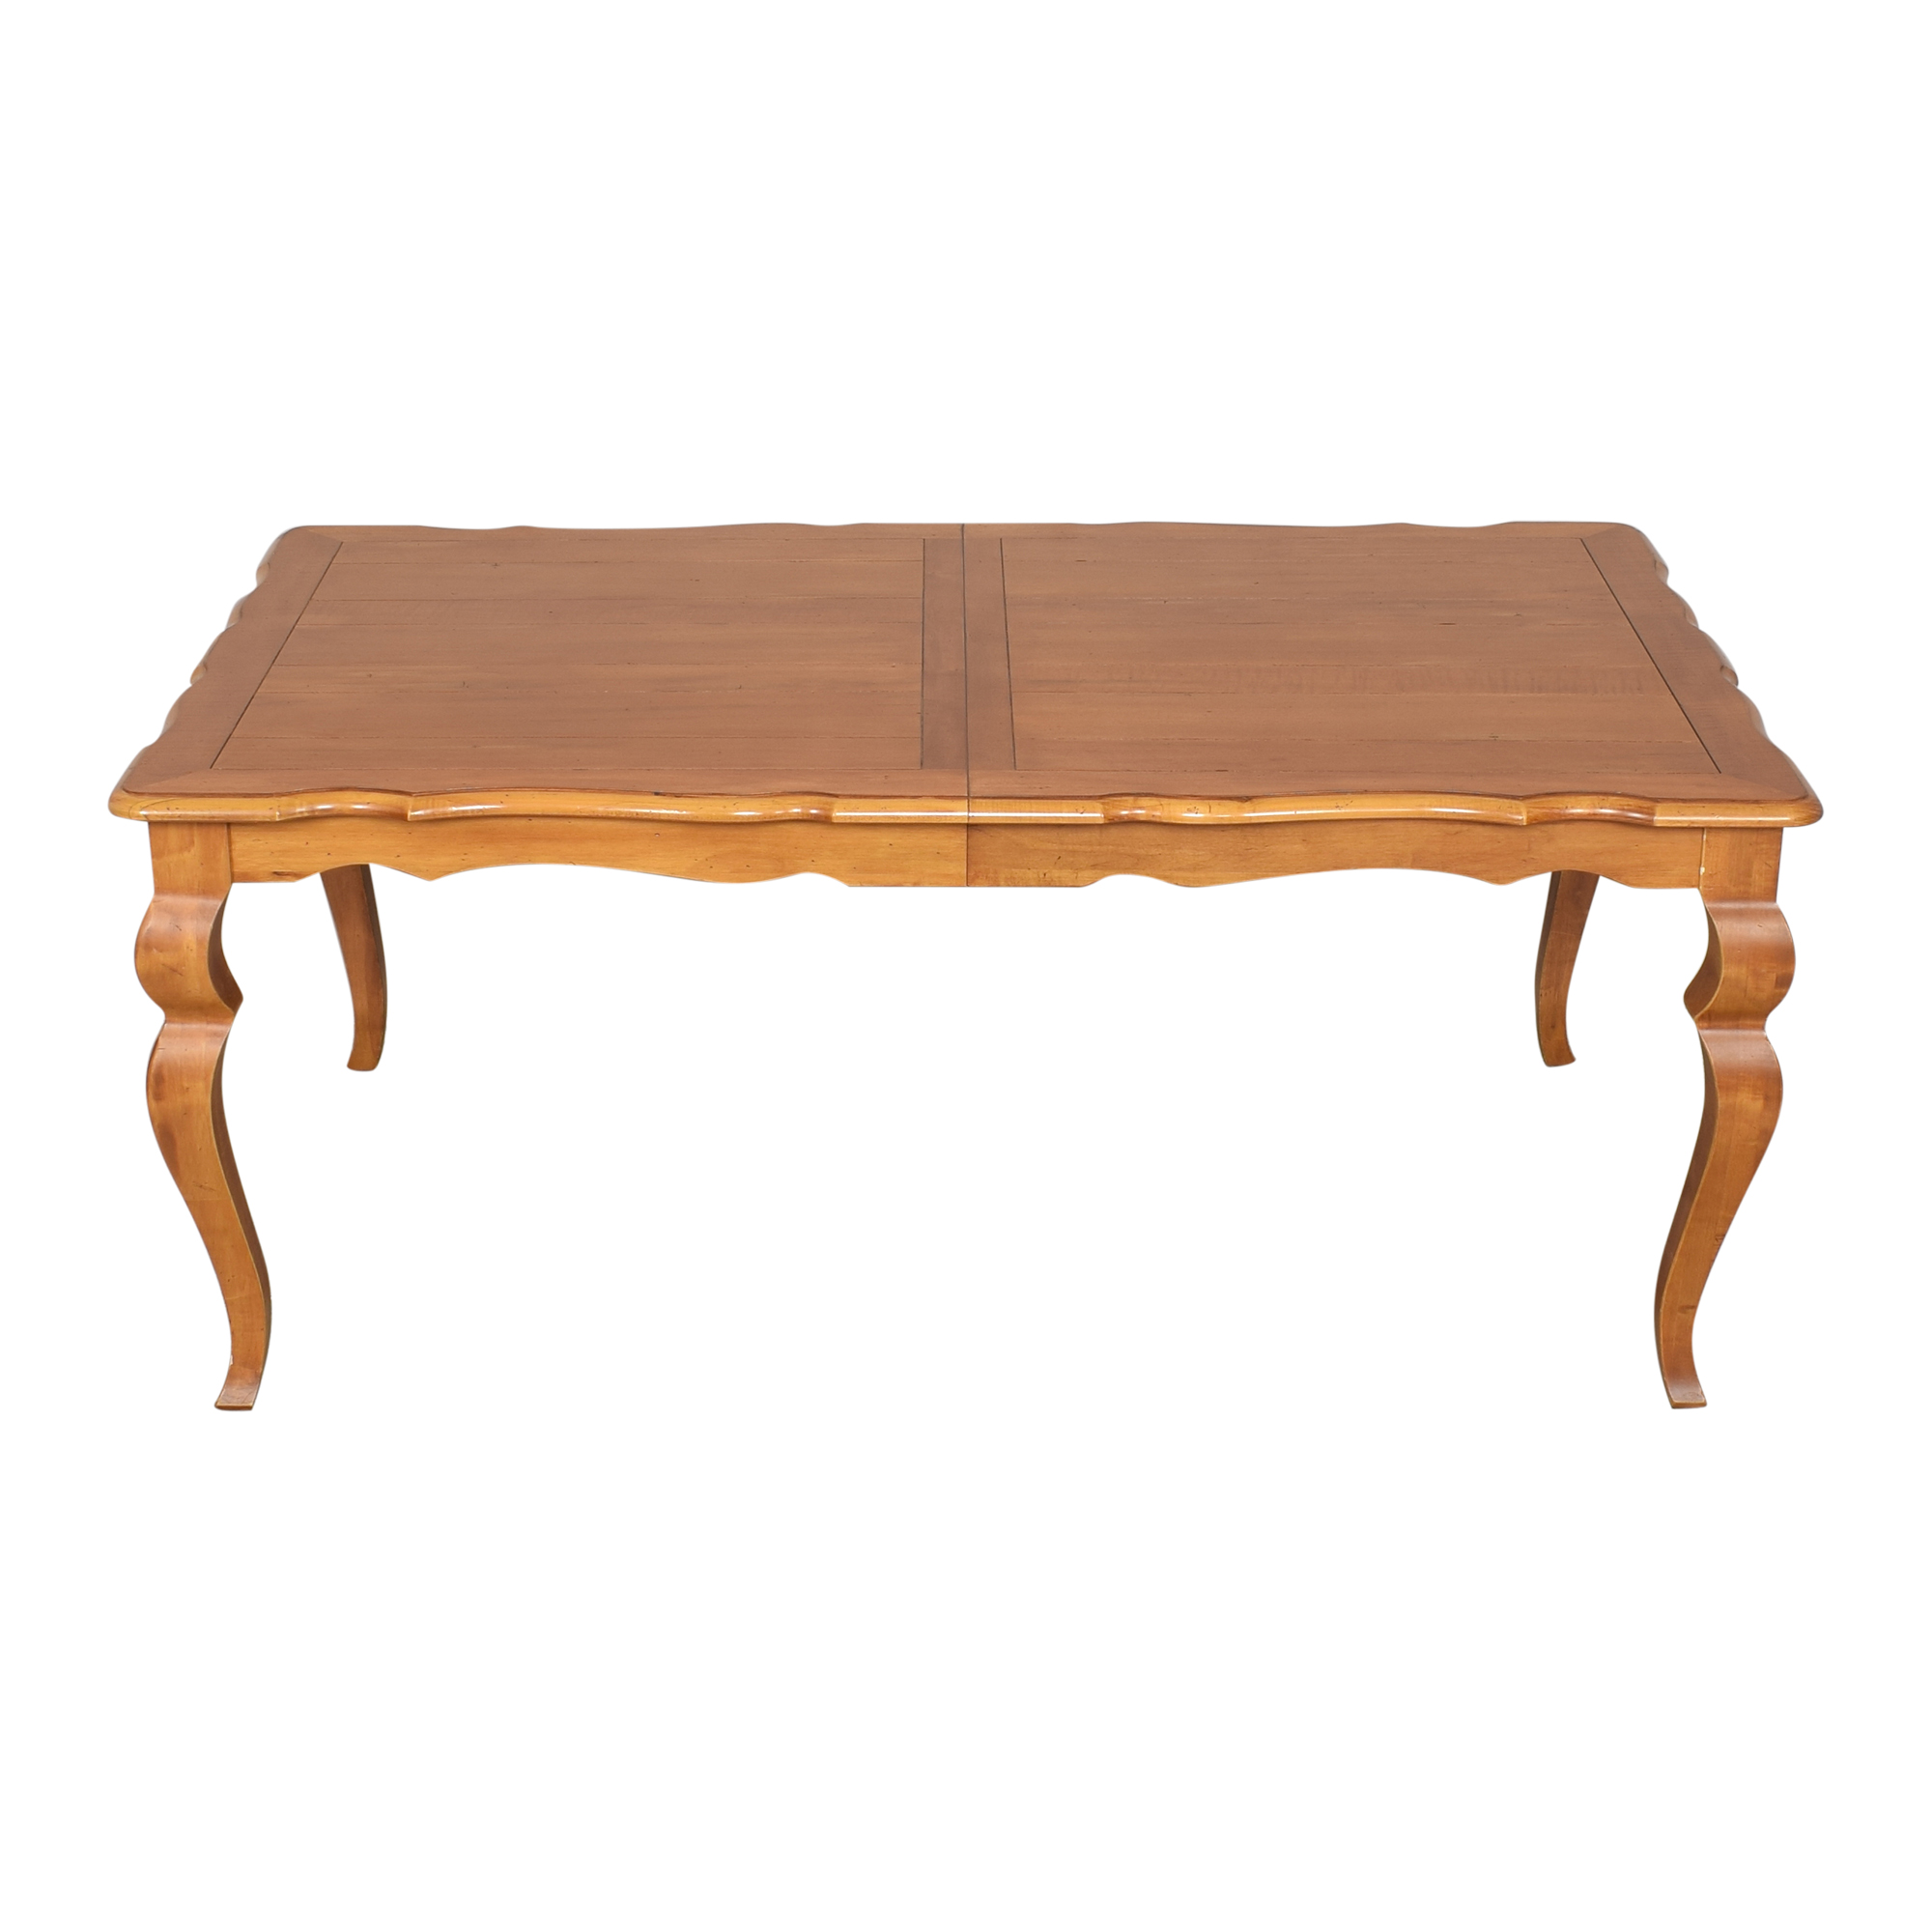 Ethan Allen Ethan Allen Legacy Dining Table brown